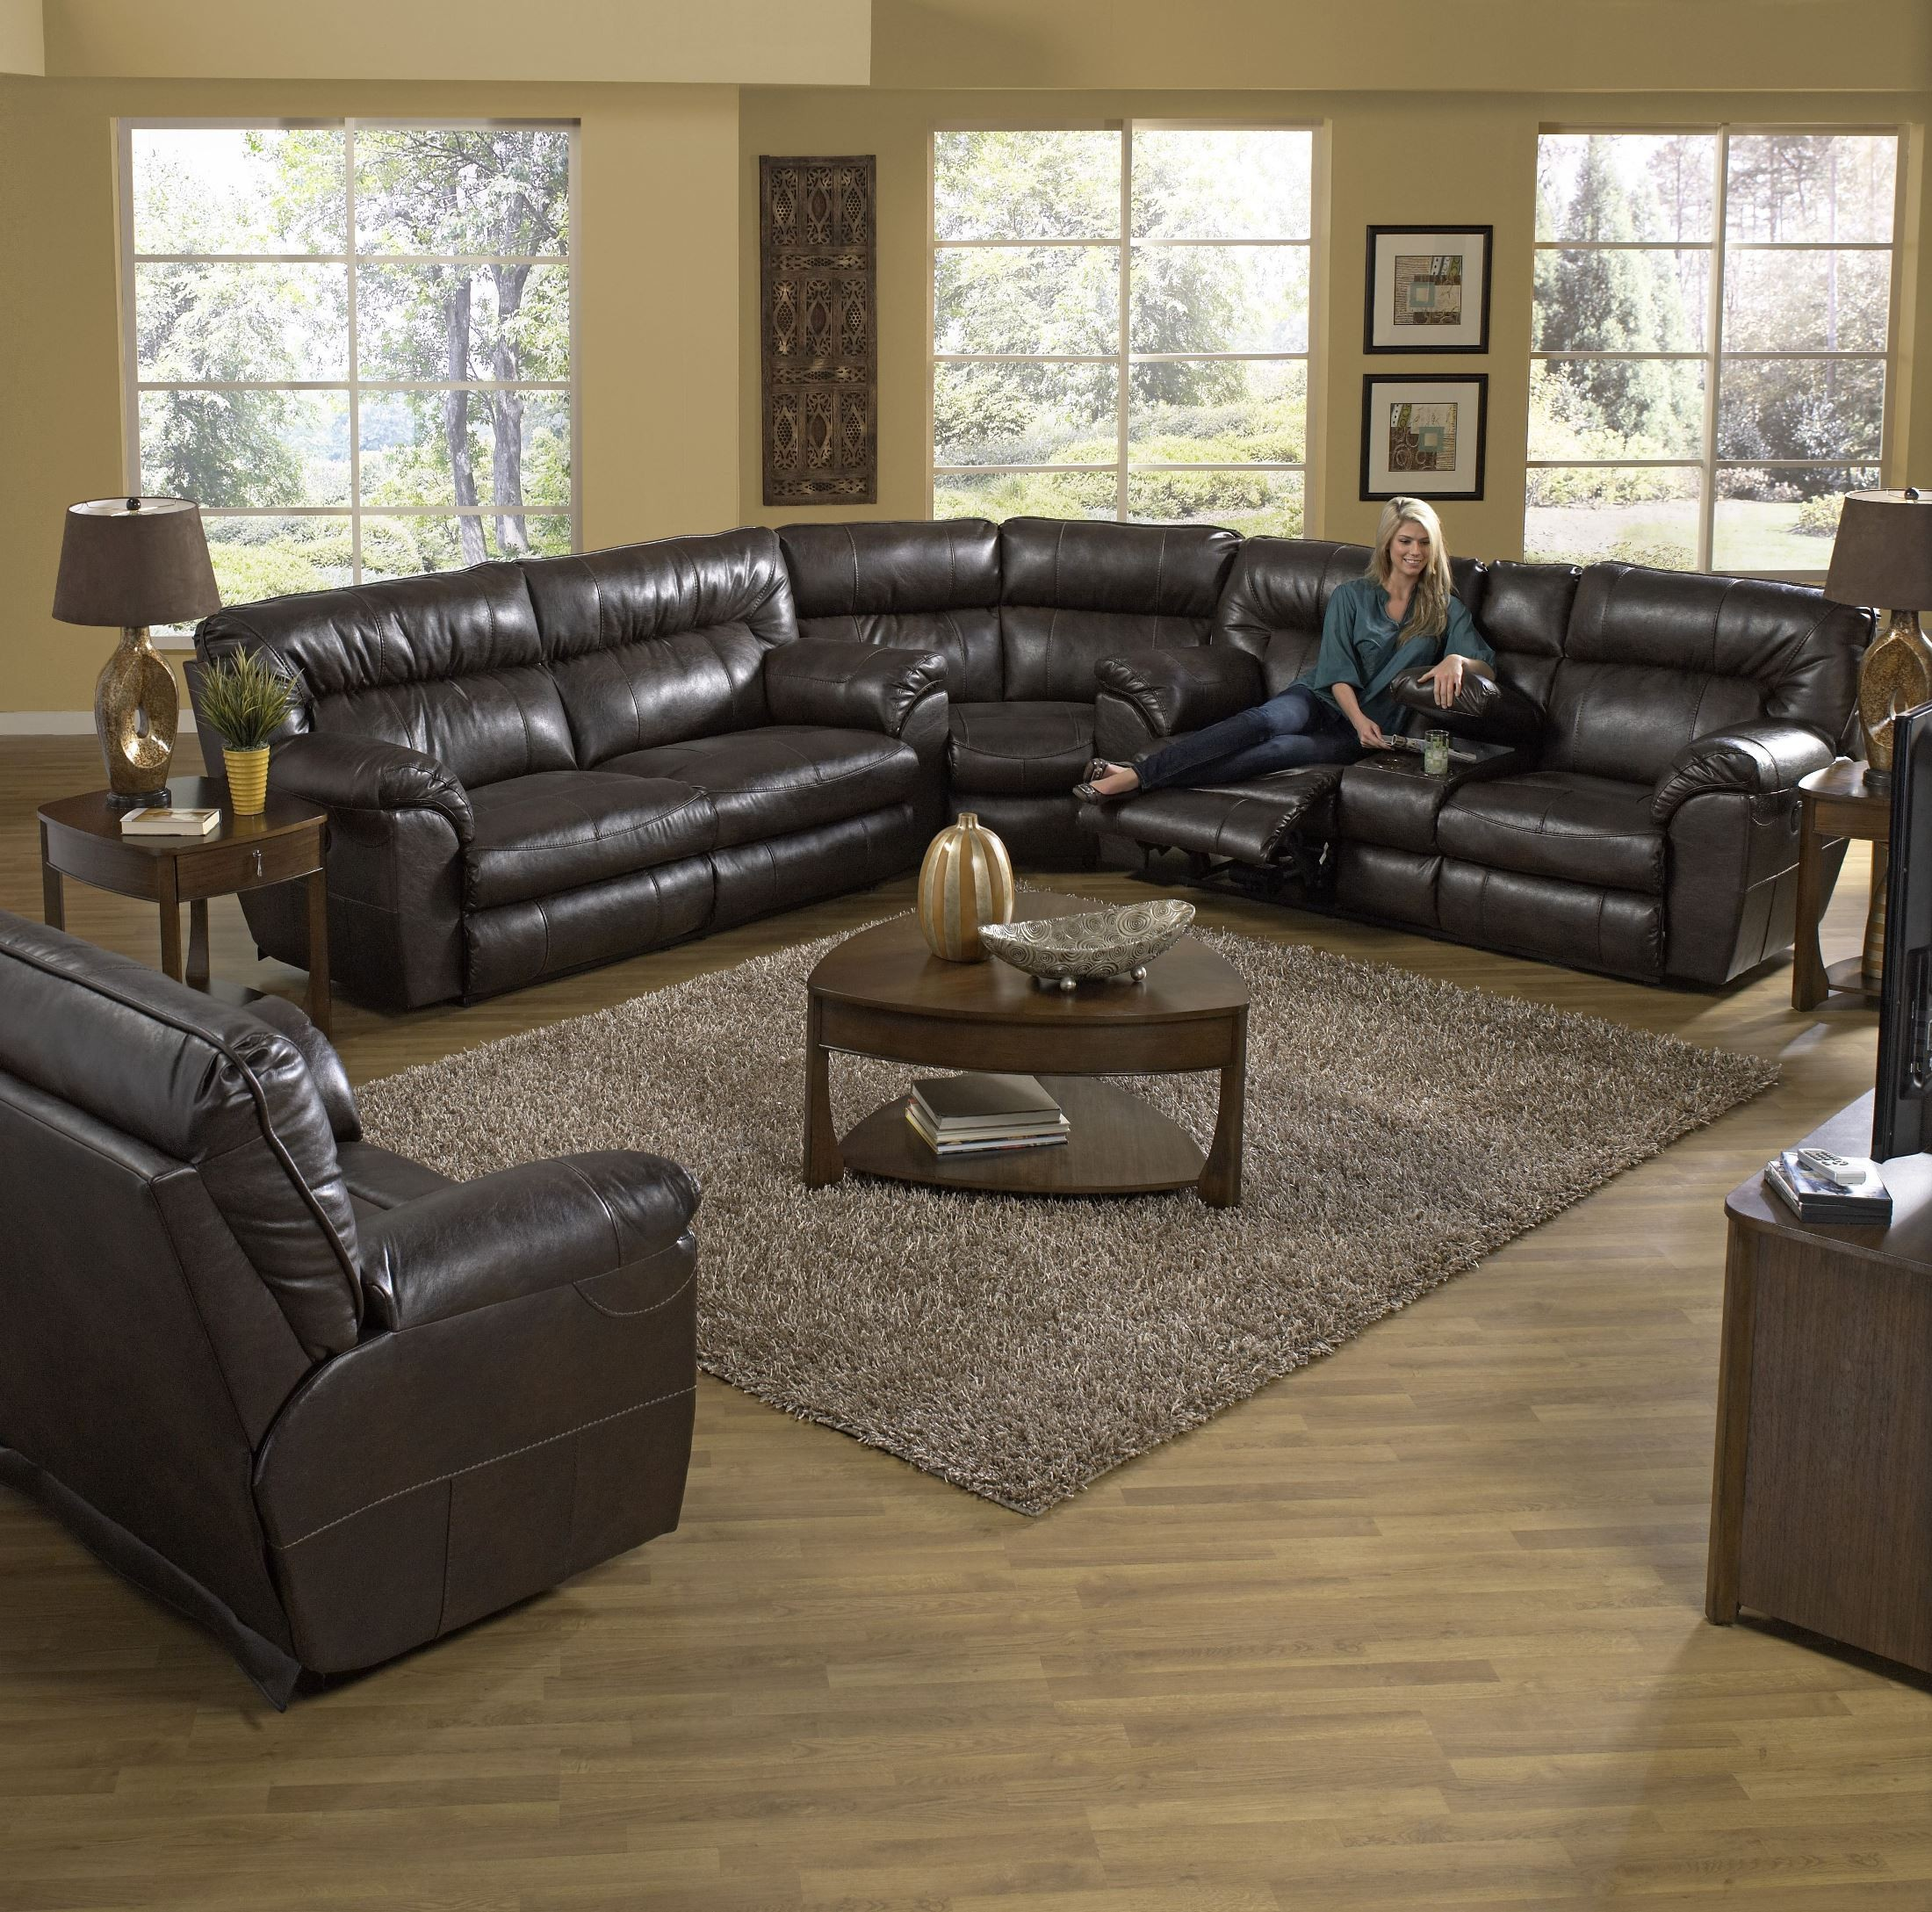 Nolan Godiva Reclining Sectional From Catnapper Coleman Furniture